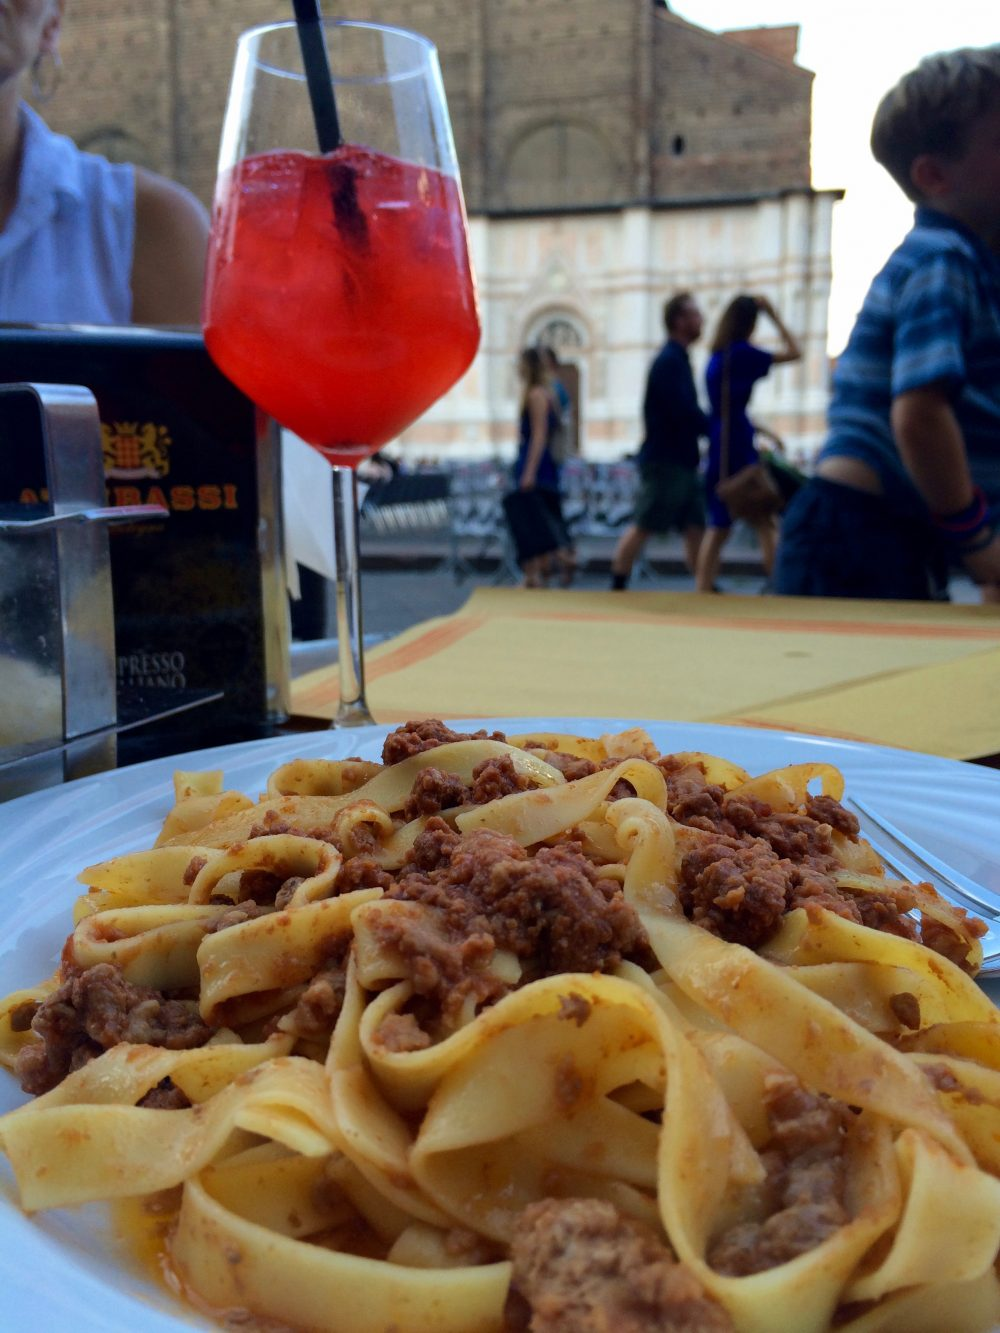 A delicious meal during a layover in Bologna